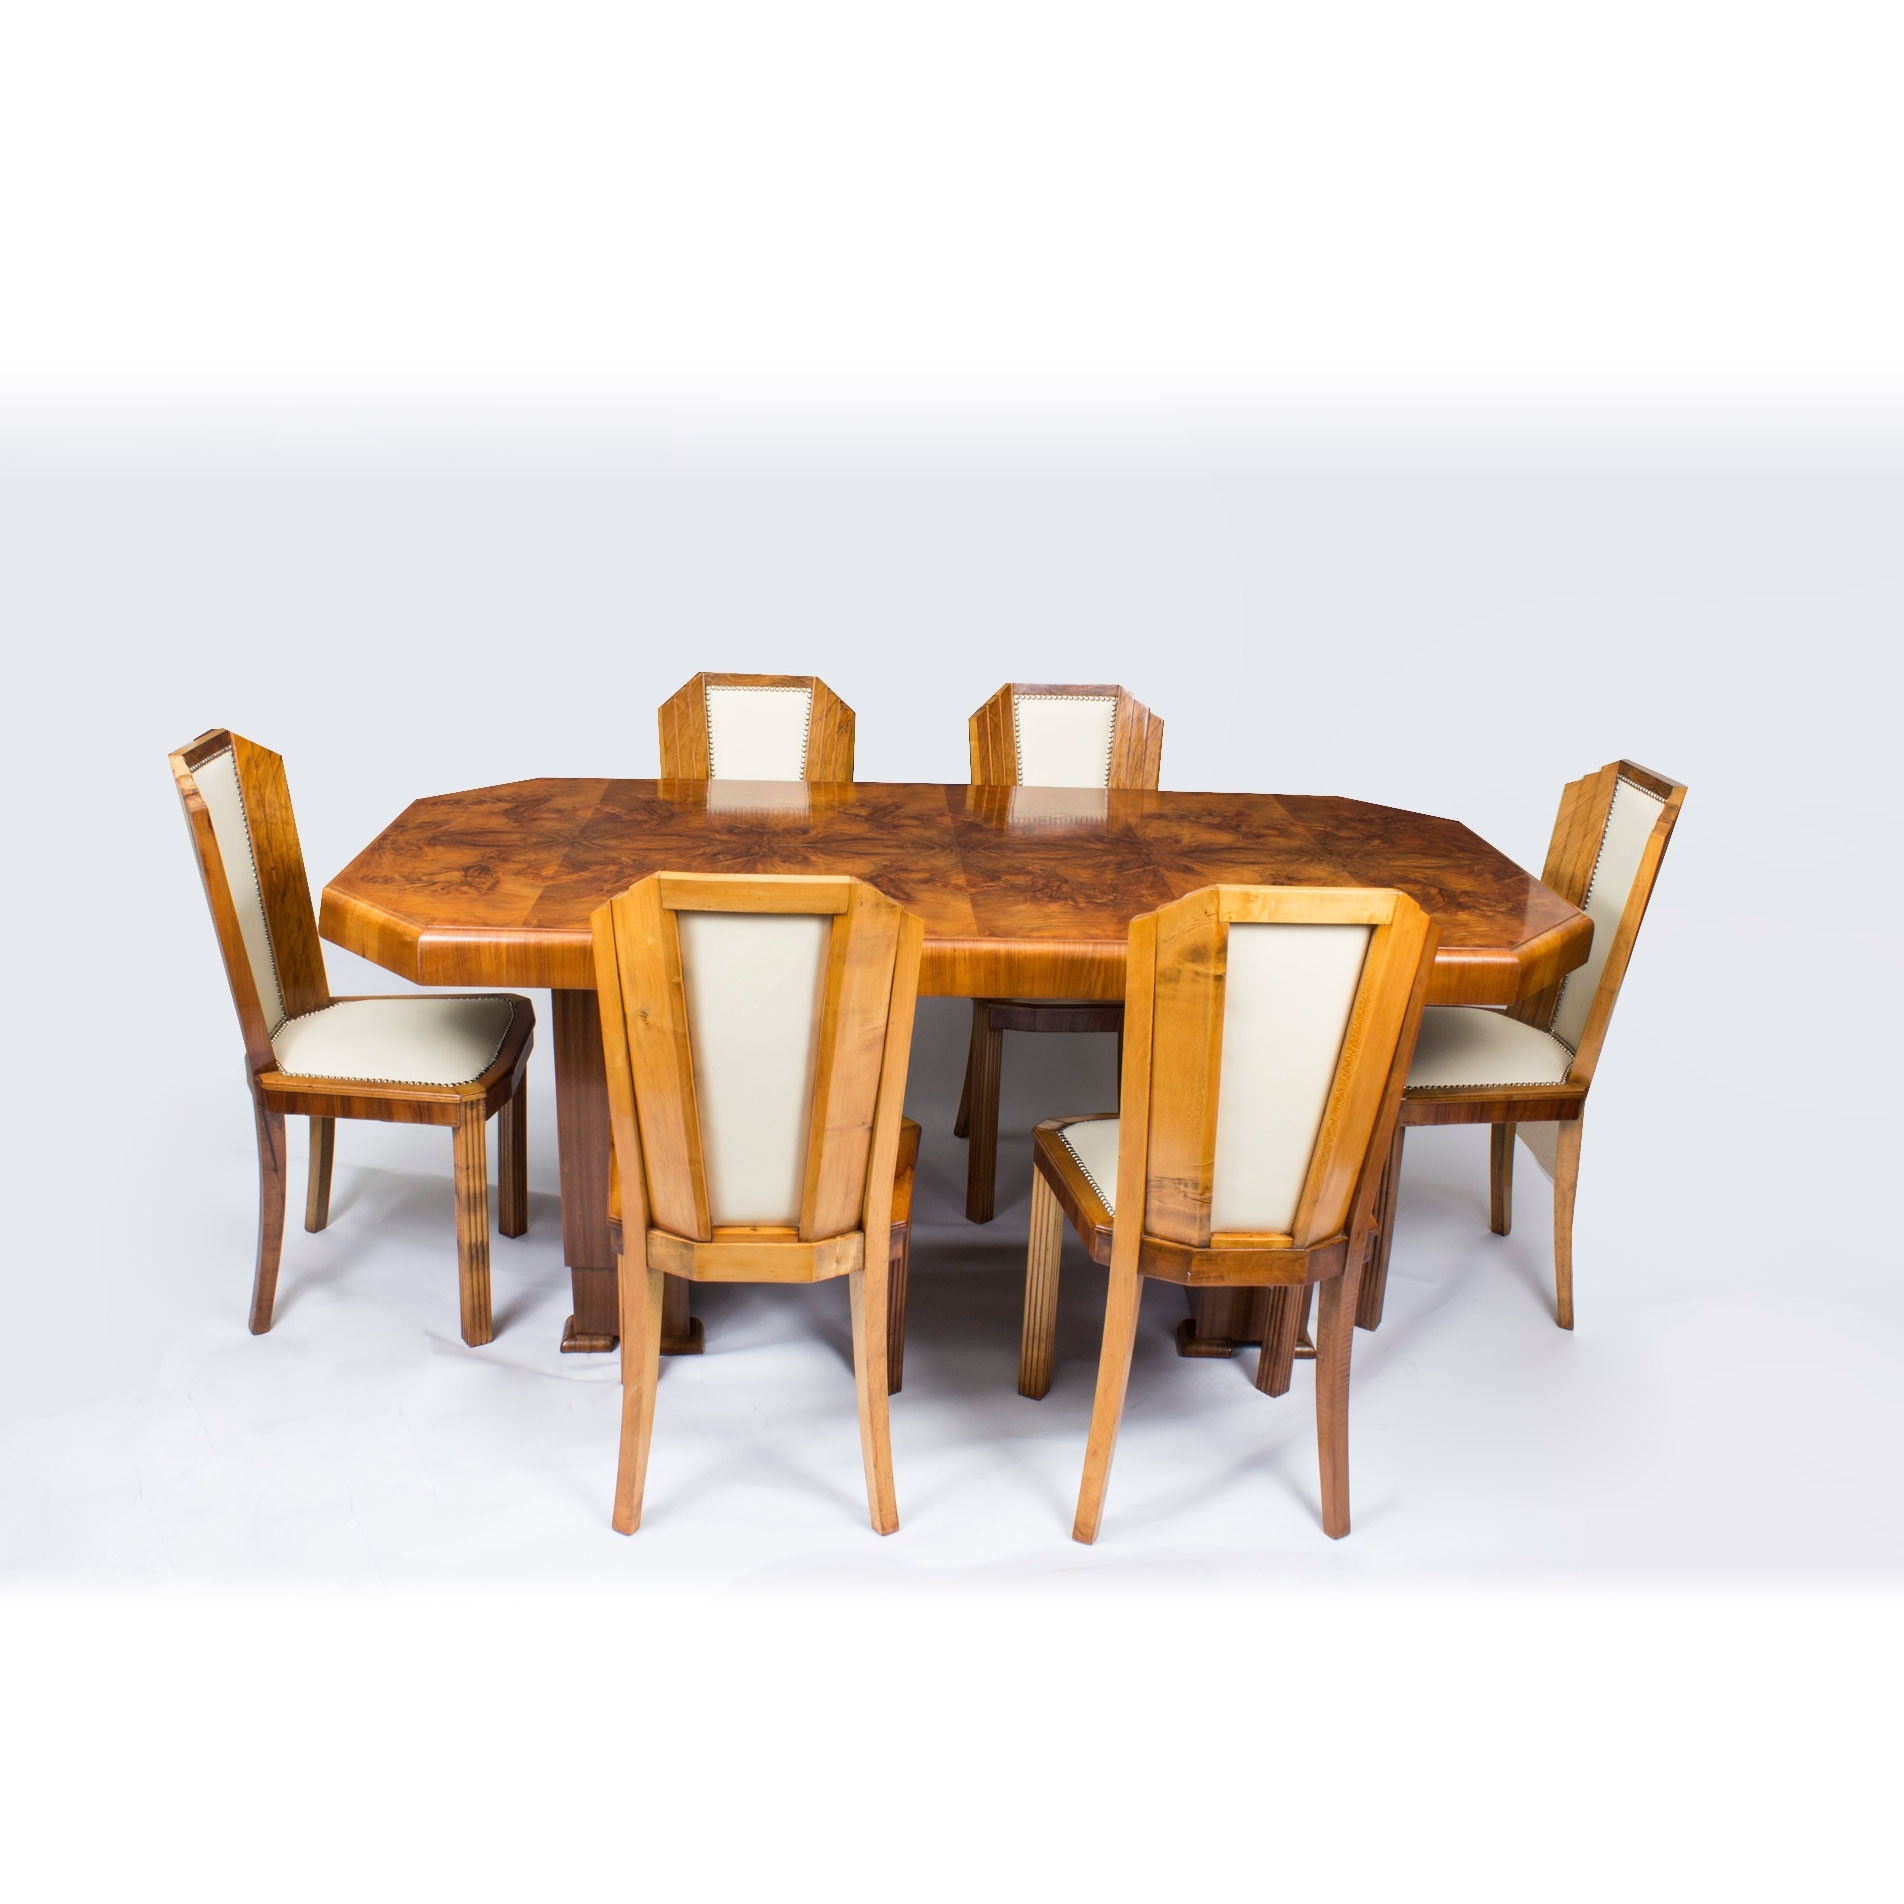 1930S Art Deco Burr Walnut Dining Table 6 Chairs (C. 1930 England throughout 2018 Walnut Dining Tables And 6 Chairs